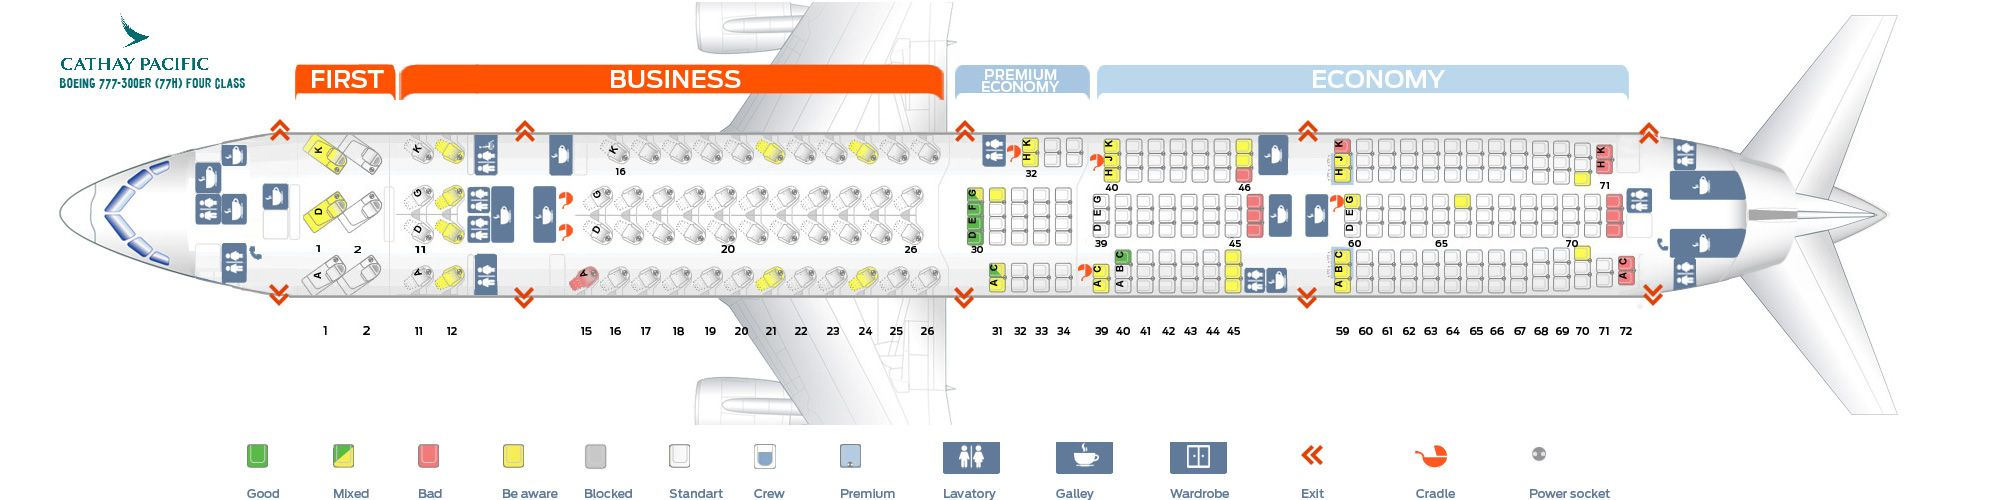 seat map cathay pacific 777 300er Cathay Pacific Fleet Boeing 777 300 Er Details And Pictures seat map cathay pacific 777 300er